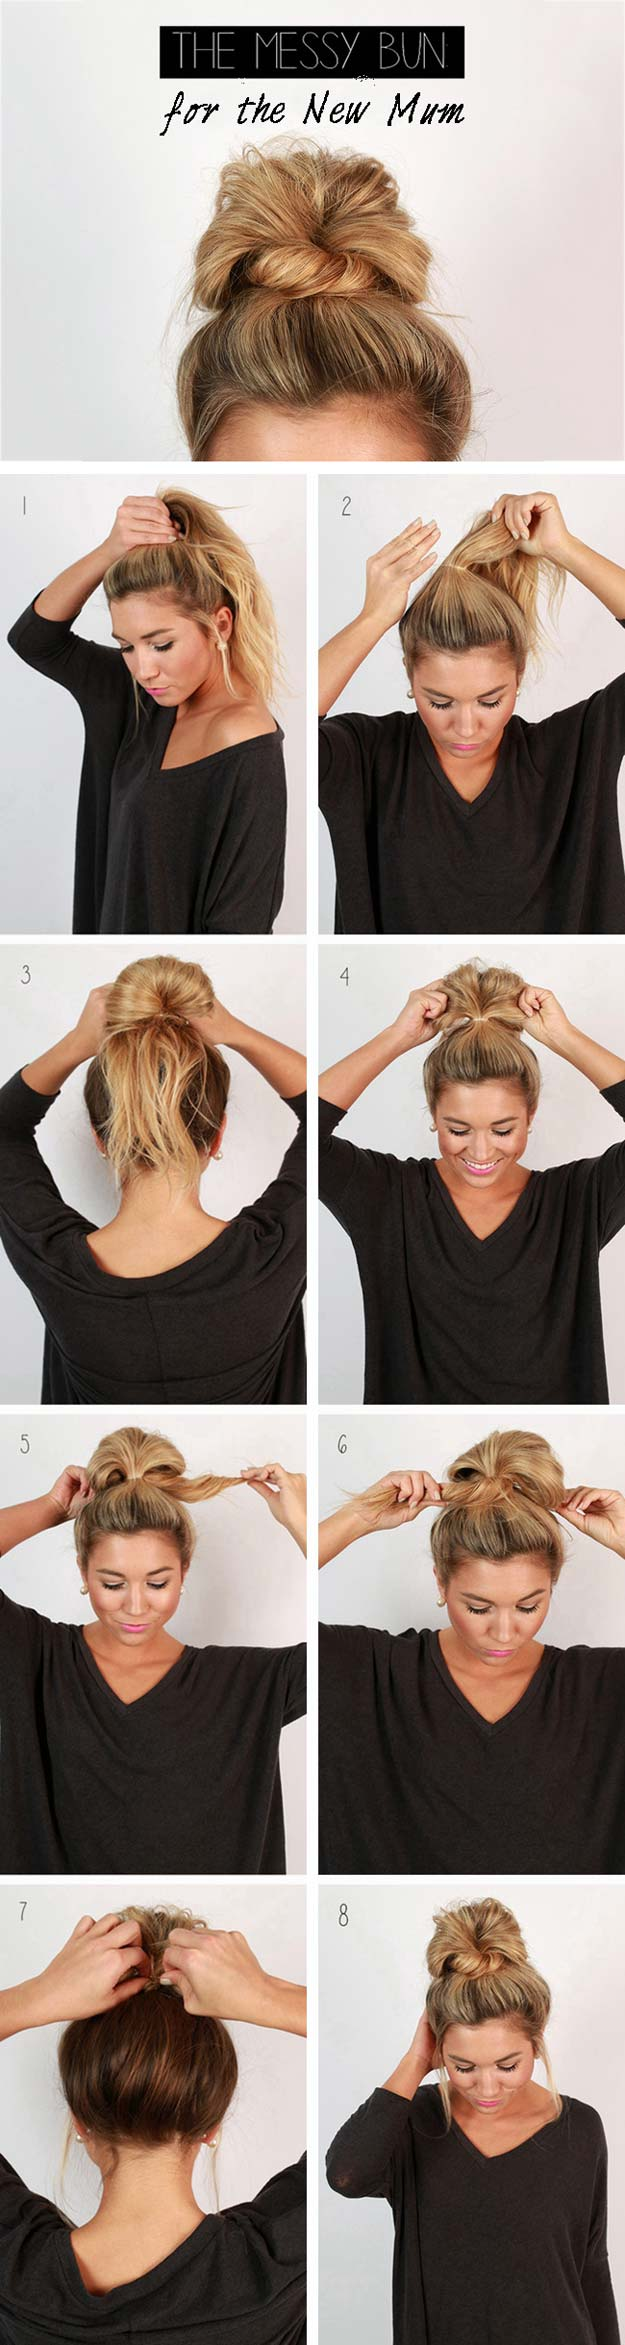 Cool and Easy DIY Hairstyles - Messy Bun - Quick and Easy Ideas for Back to School Styles for Medium, Short and Long Hair - Fun Tips and Best Step by Step Tutorials for Teens, Prom, Weddings, Special Occasions and Work. Up dos, Braids, Top Knots and Buns, Super Summer Looks #hairstyles #hair #teens #easyhairstyles #diy #beauty